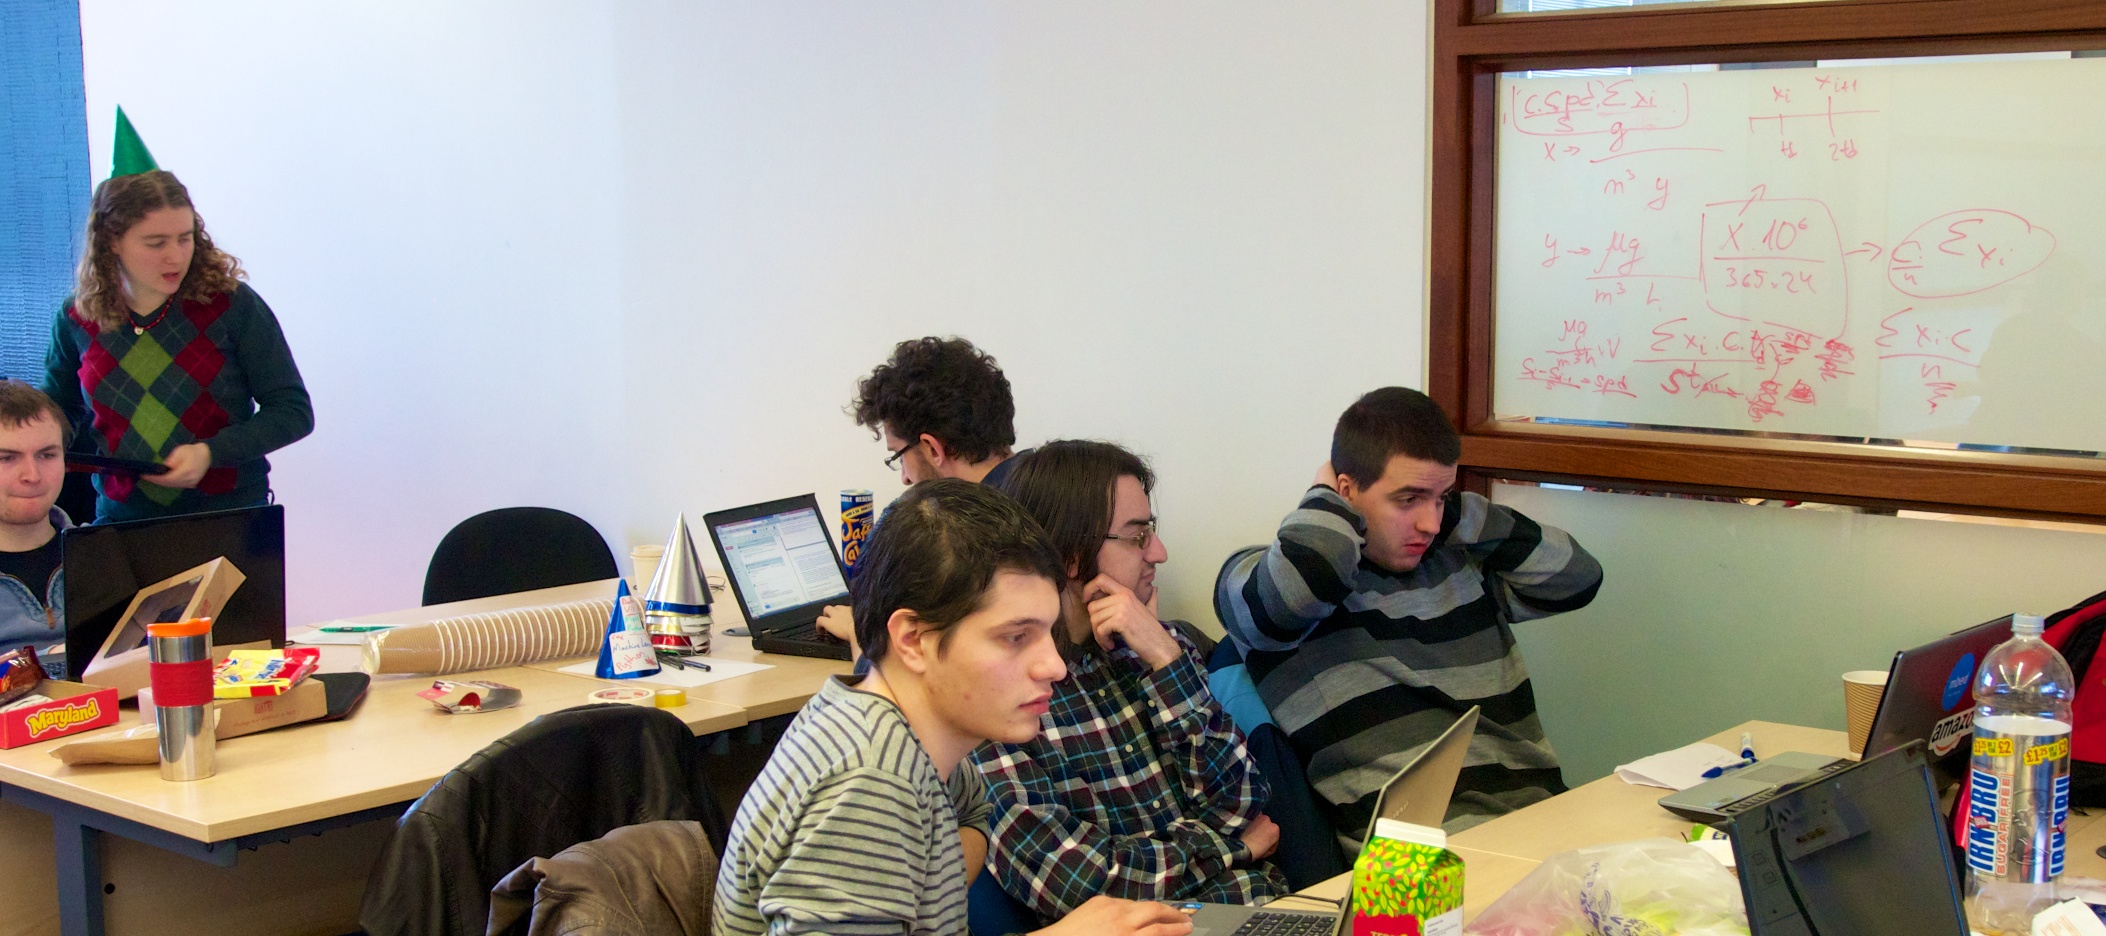 Students at the Smart Data Hack